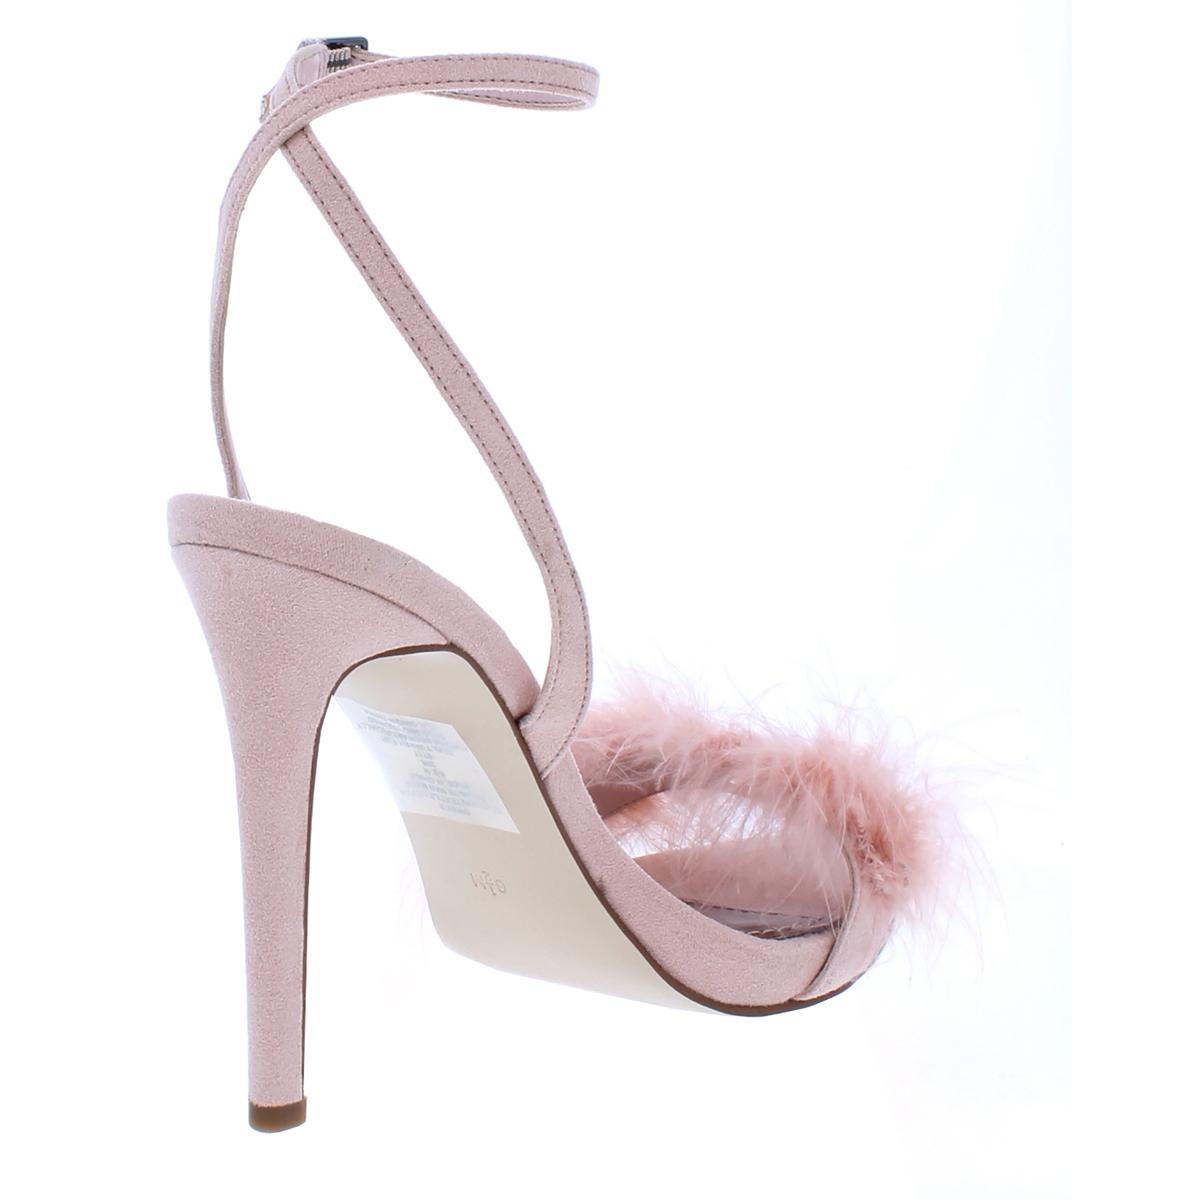 Guess donna Avis Suede Suede Suede Feather Open Toe Dress Sandals Heels BHFO 5432 b1317c